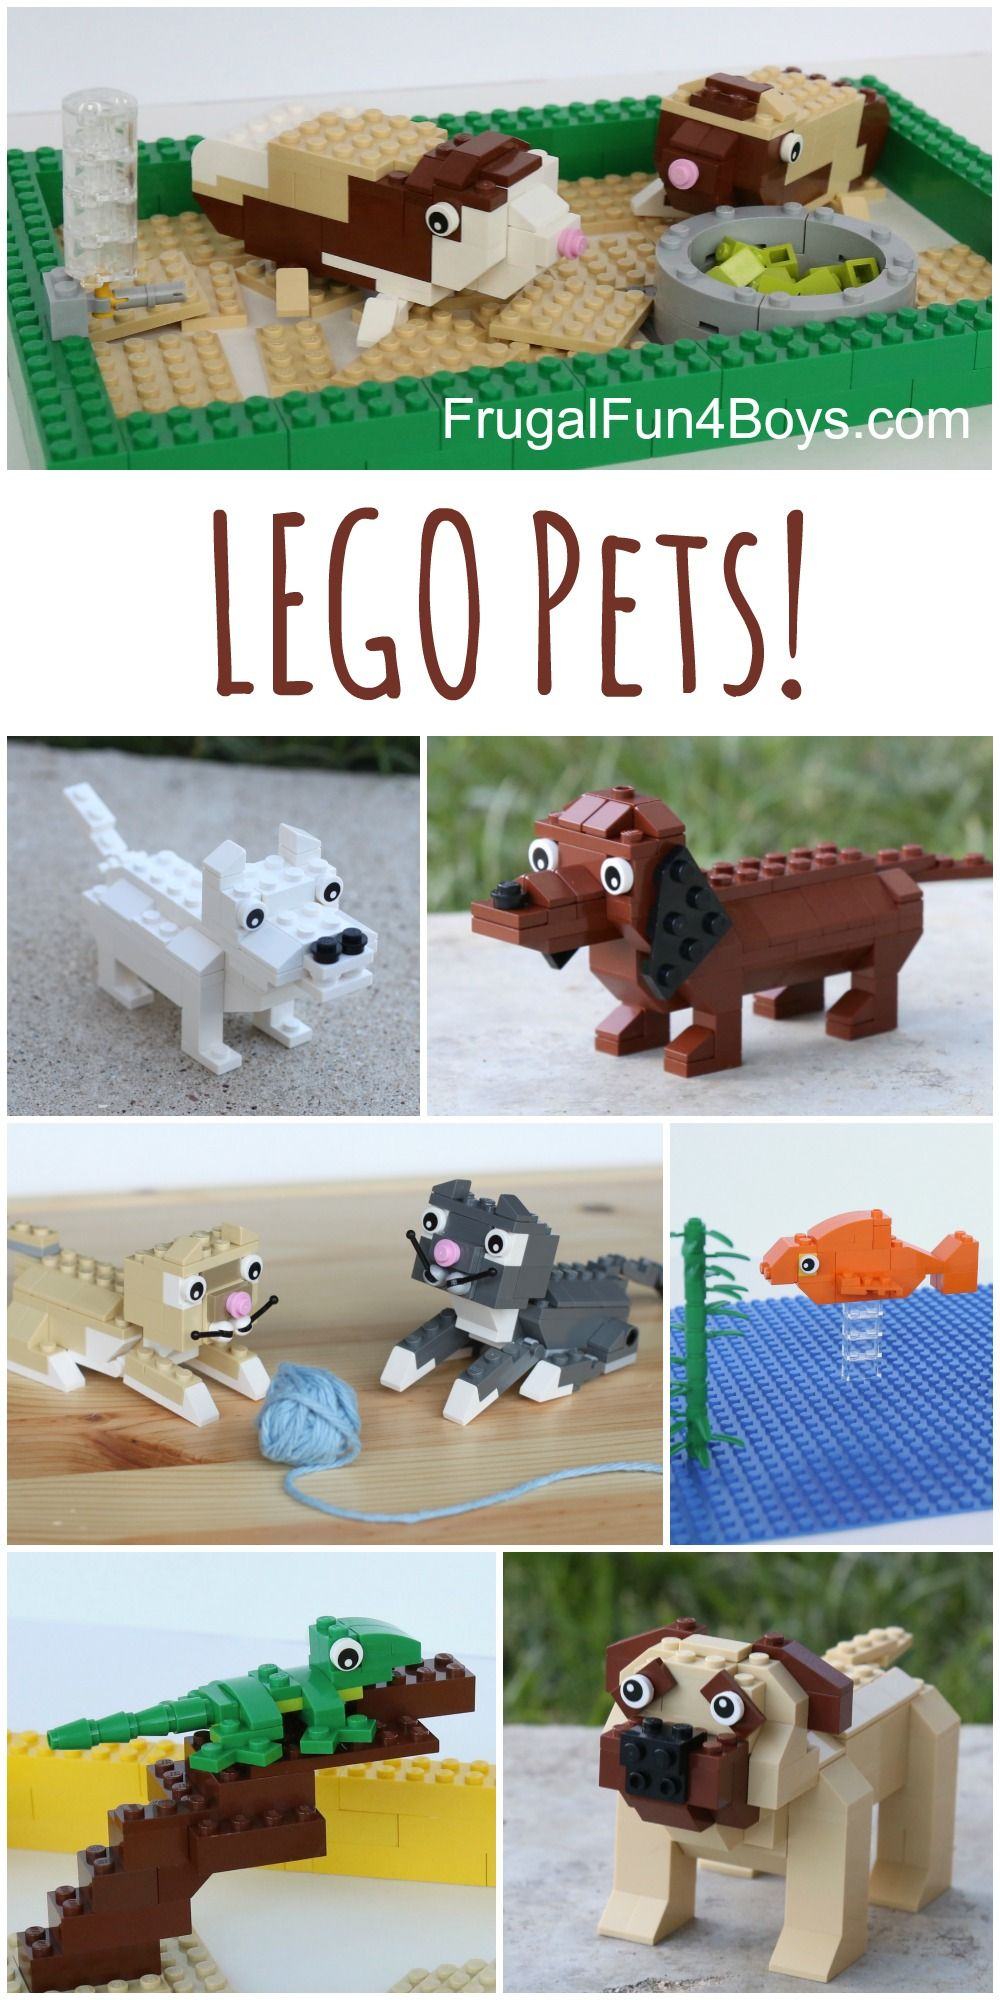 Lego pets building instructions for dogs cats guinea pigs building instructions for dogs cats guinea pigs lizards and more solutioingenieria Choice Image